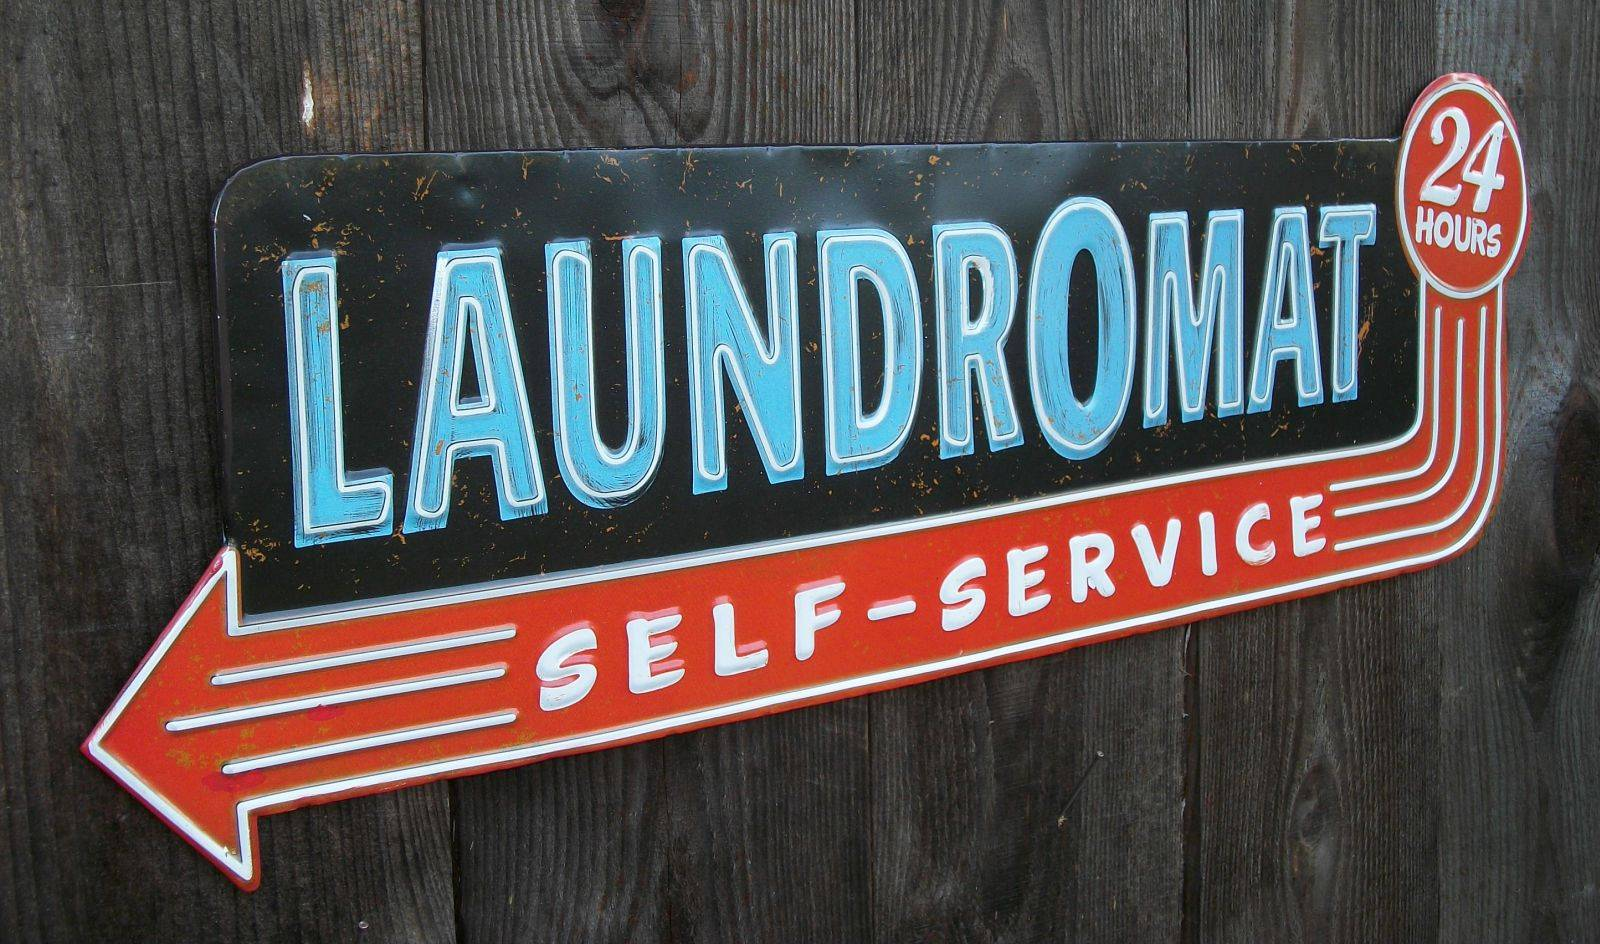 Research nearby Laundromats before you leave home.